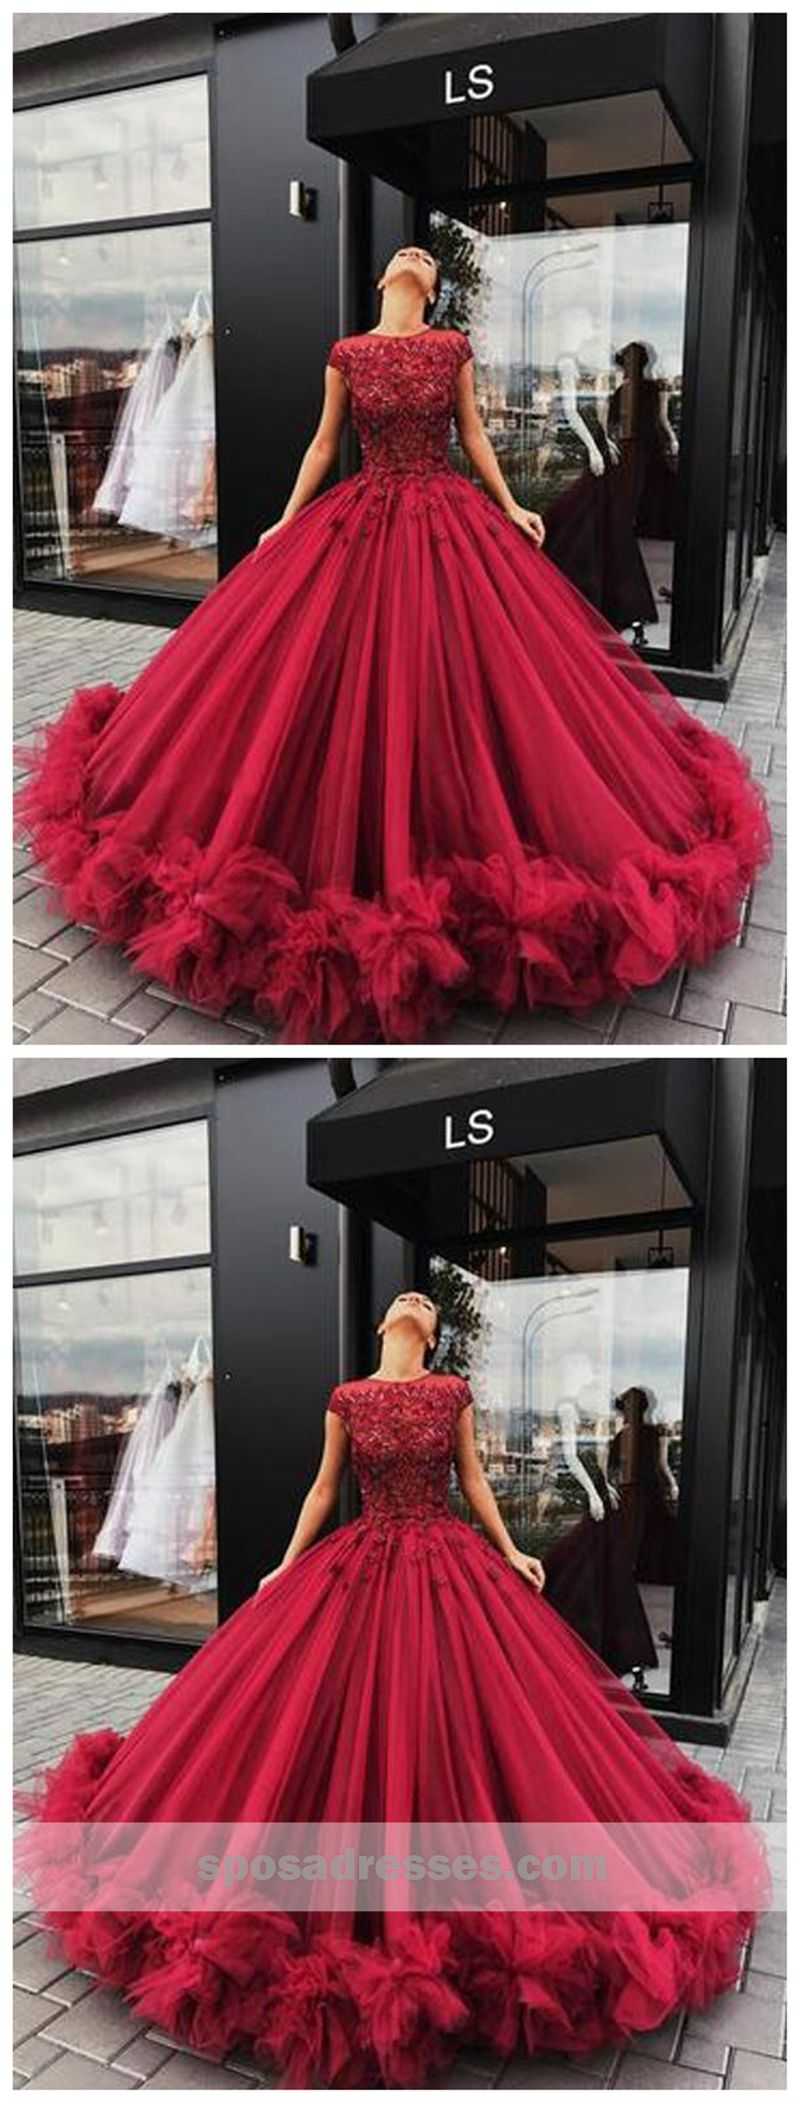 Luxurious dark red lace ball gown tulle long evening prom dresses